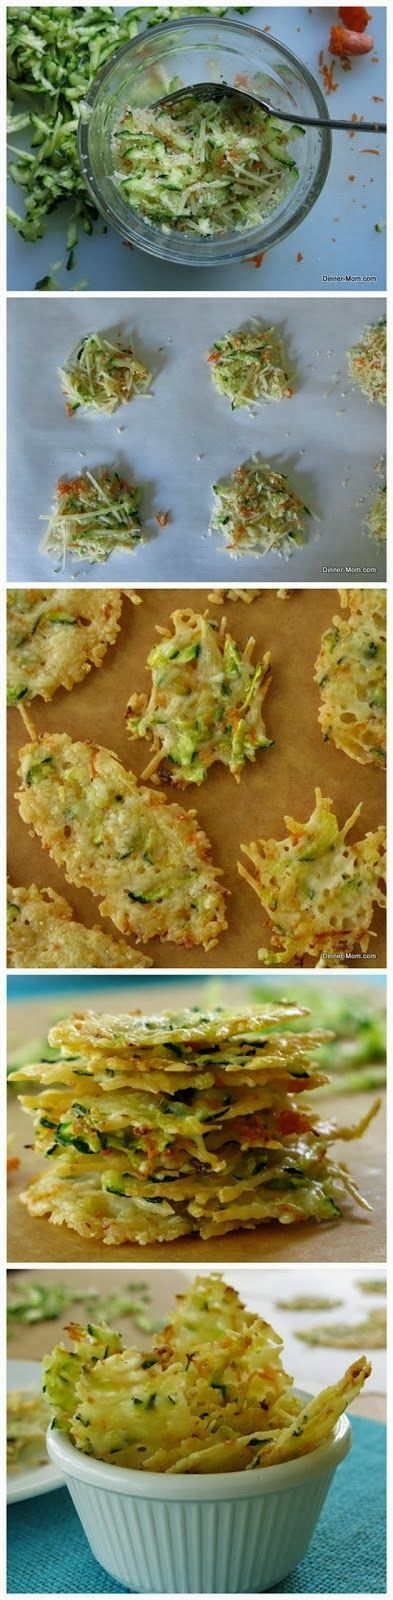 Parmesan Cheese Crisps laced with zucchini and carrot shreds - a low-carb, gluten-free snack recipe by @DinnerMom